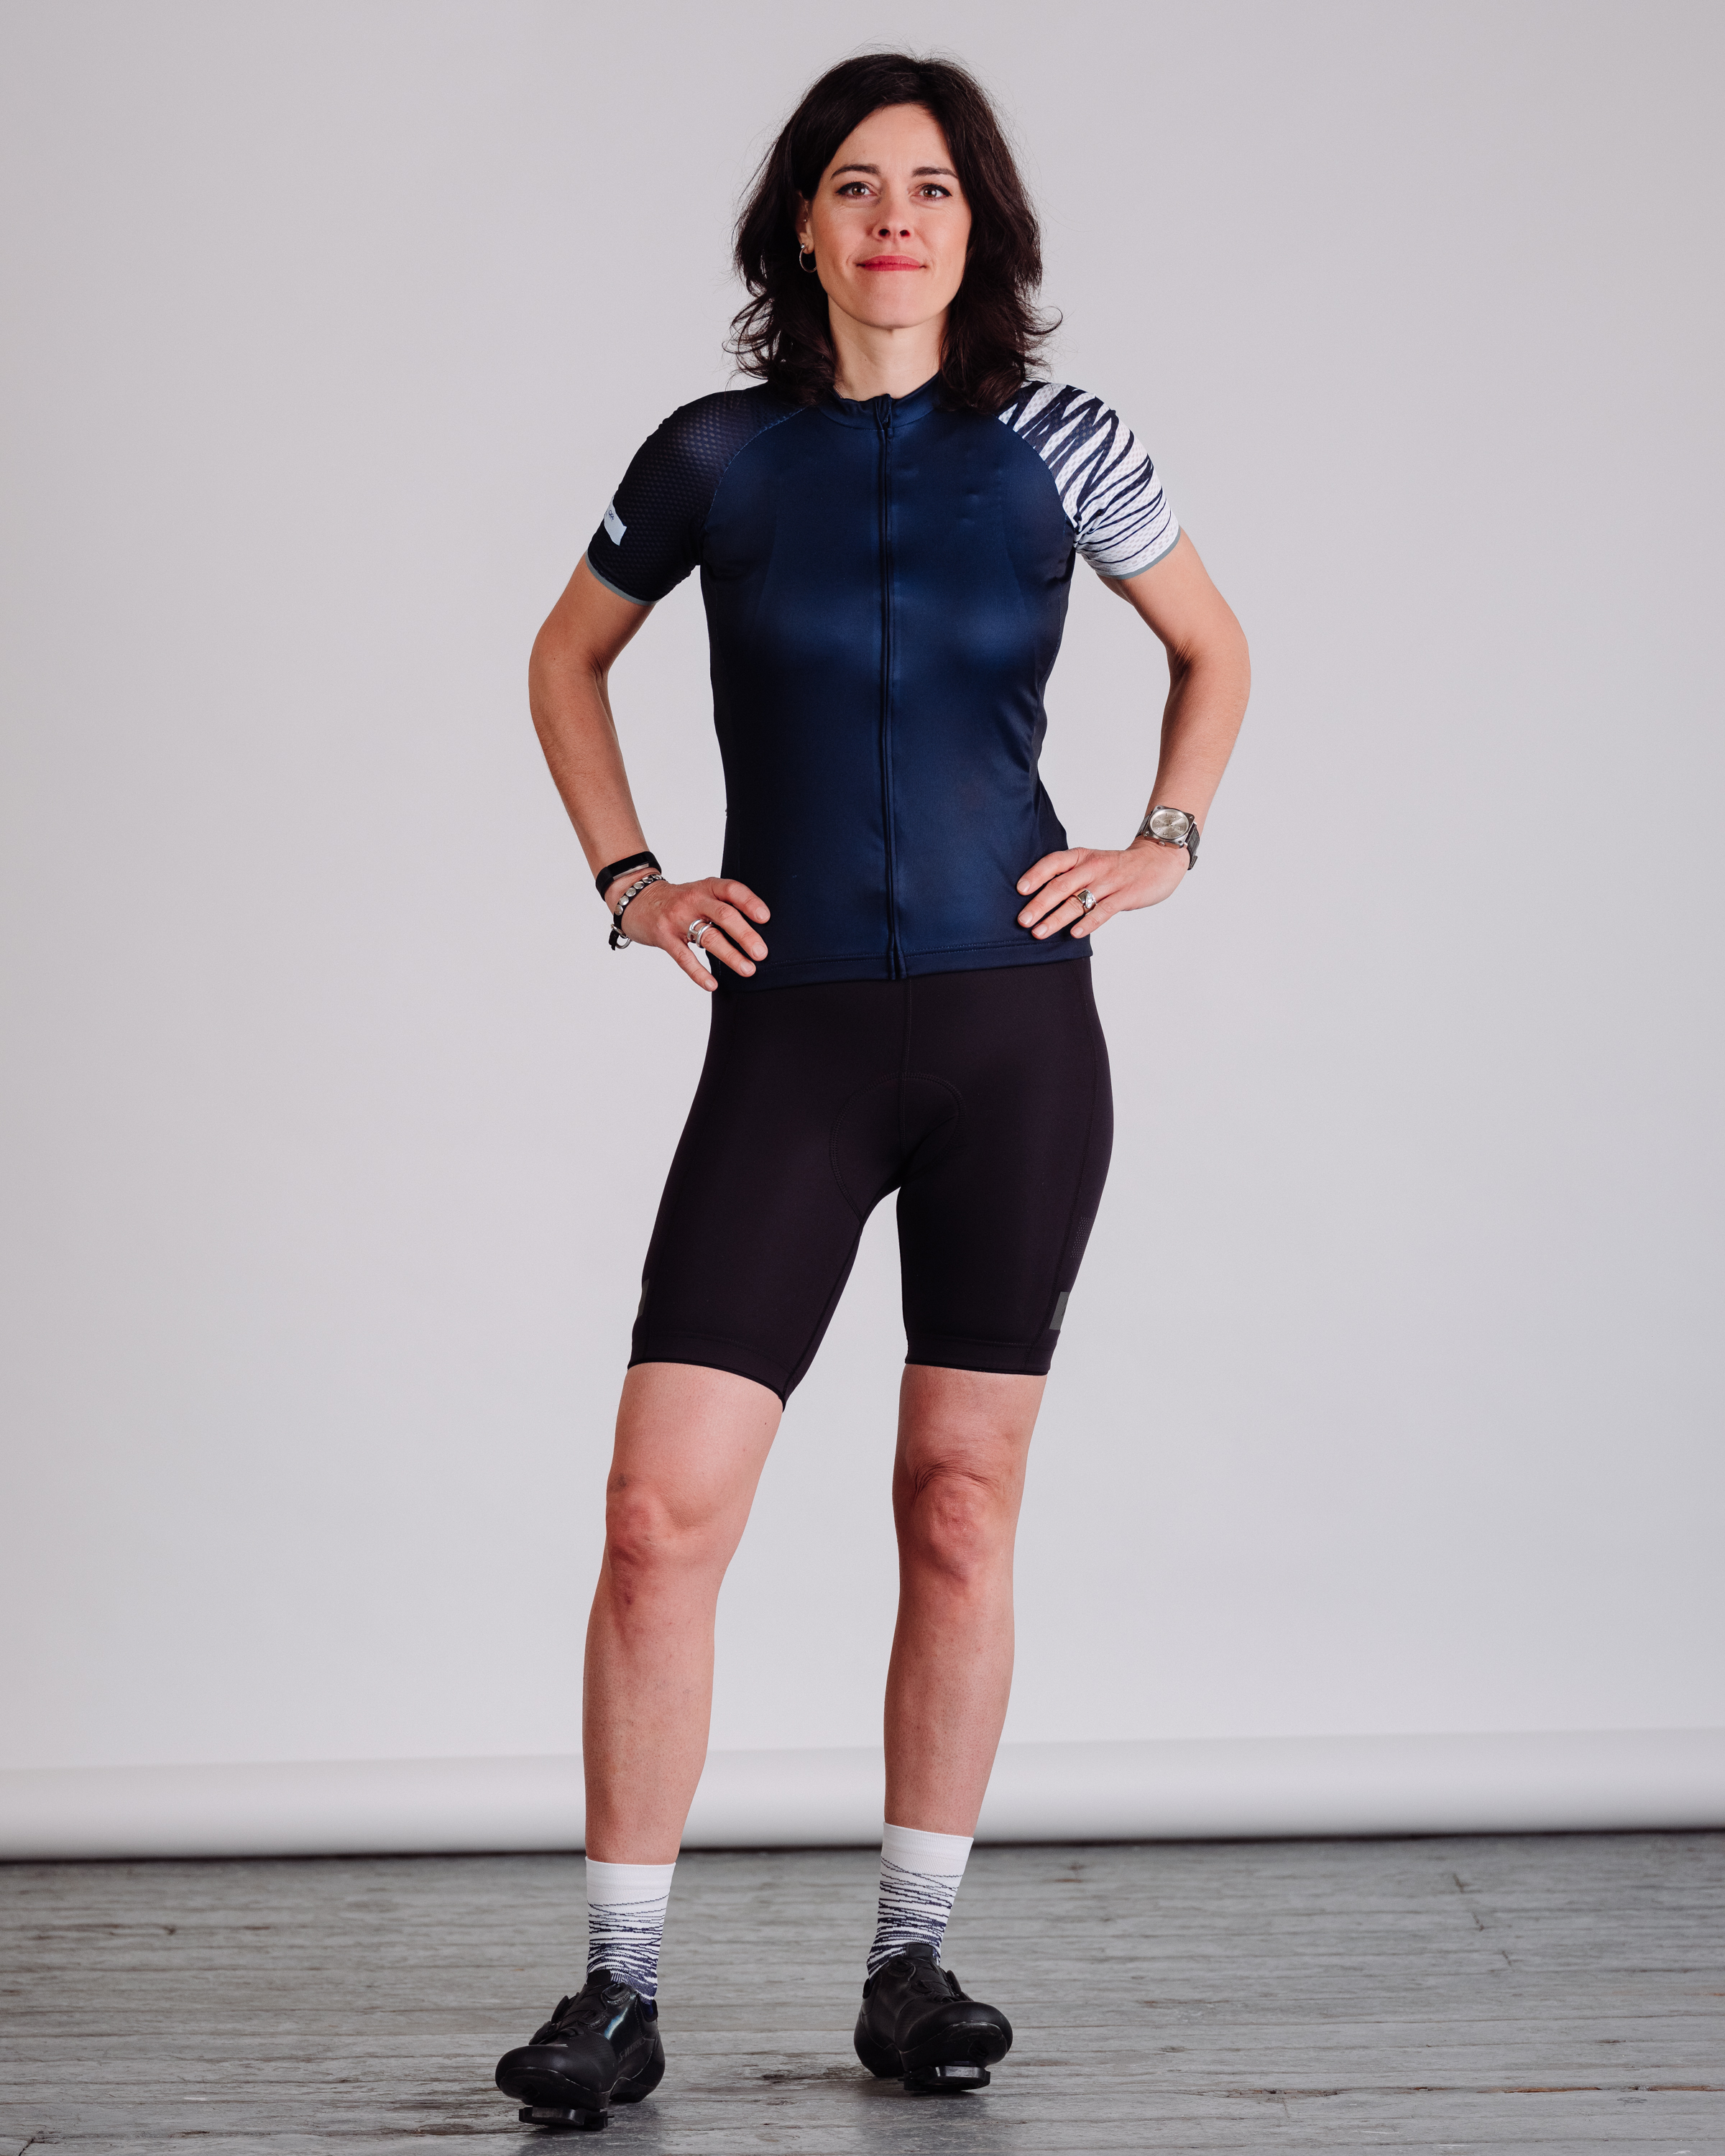 Plum Savill - Rides: Road, MTBSpeciality topics: Ethical stuff, fashion, photographyInterests: Cycling, cooking, dogs@plumsavill